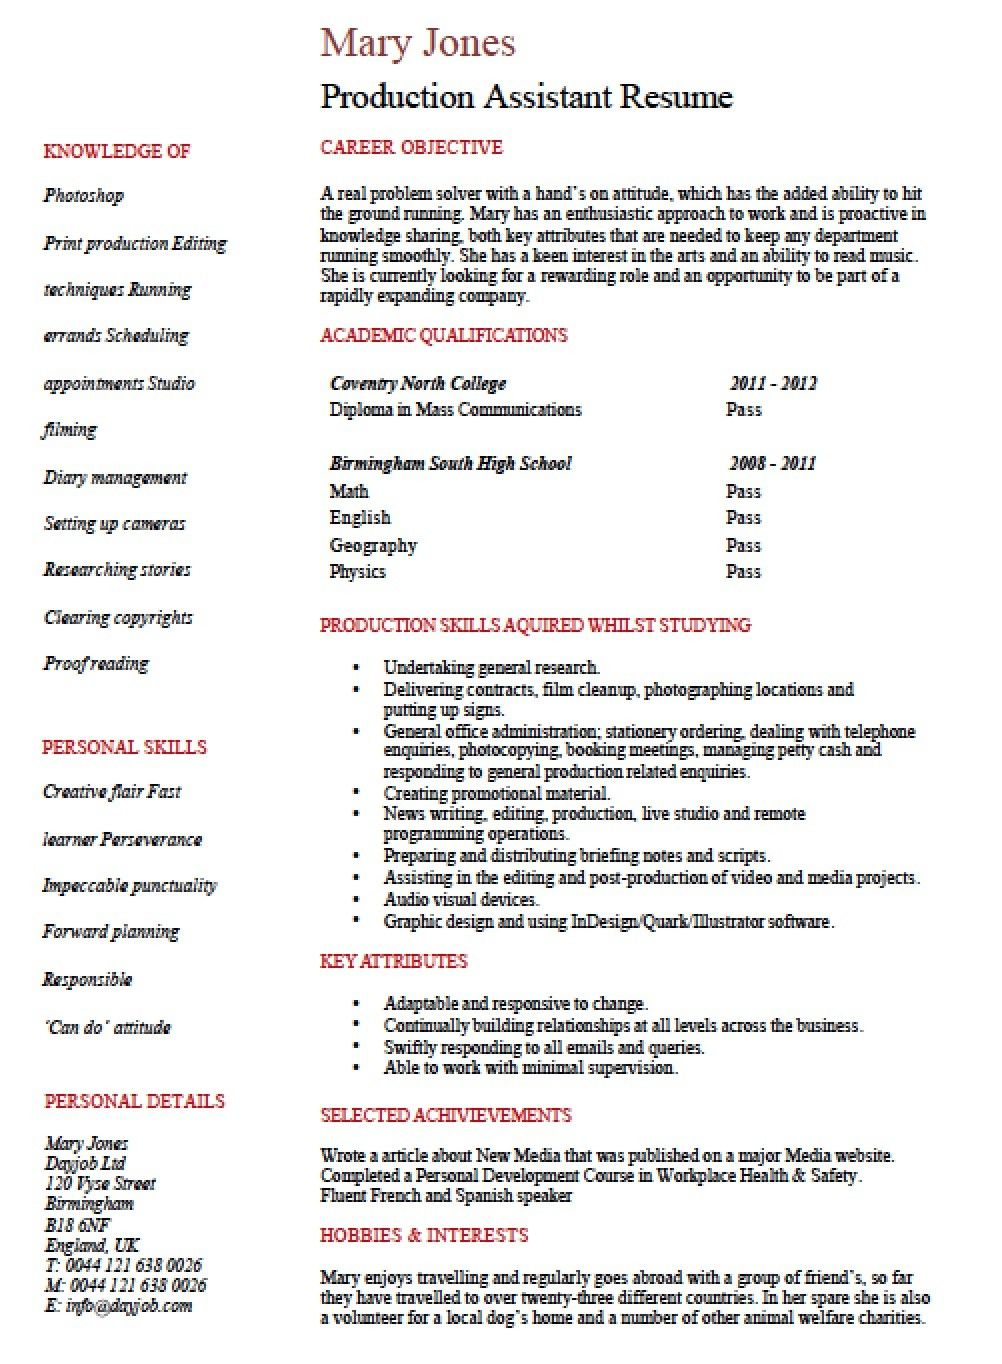 Top 20 Production assistant Resume Resume, Resume